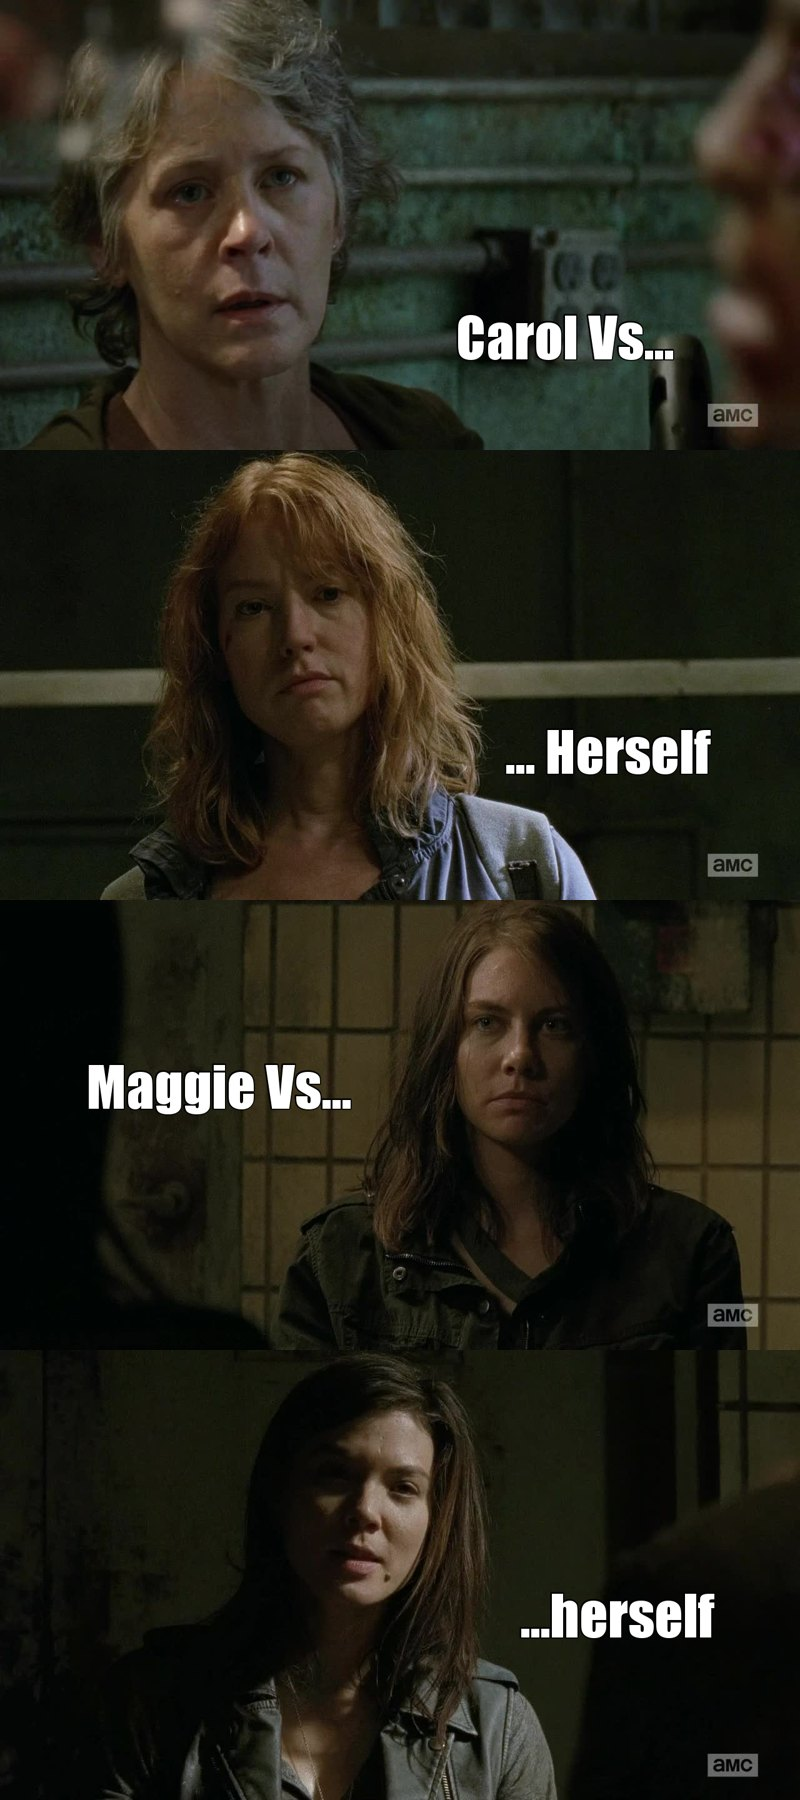 What an amazing mirroring of what they are. Carol and Maggie met their perfect counterparts... But who's the bad guys now?